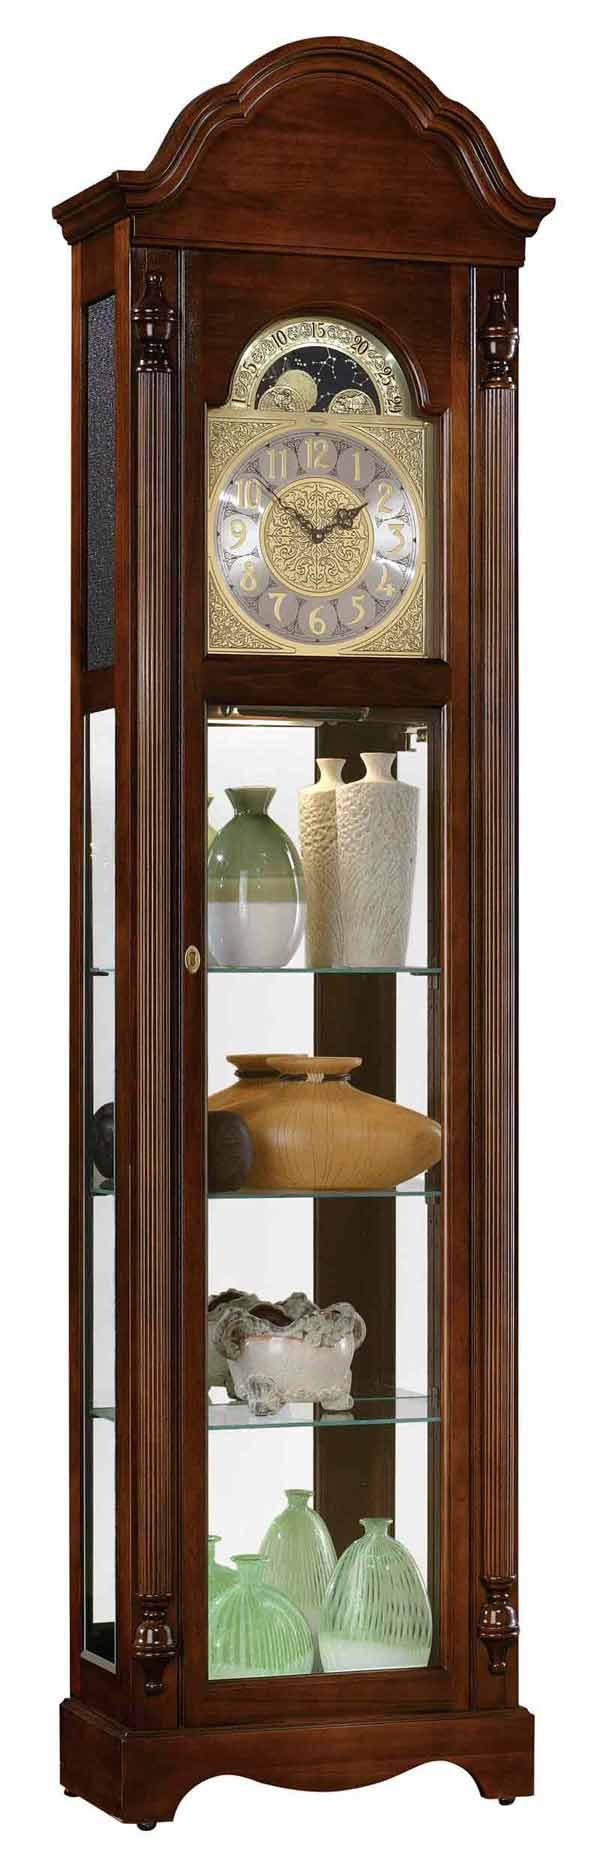 Detailed Image Of The Ridgeway Clarksburg 2041 Quartz Curio Grandfather Clock